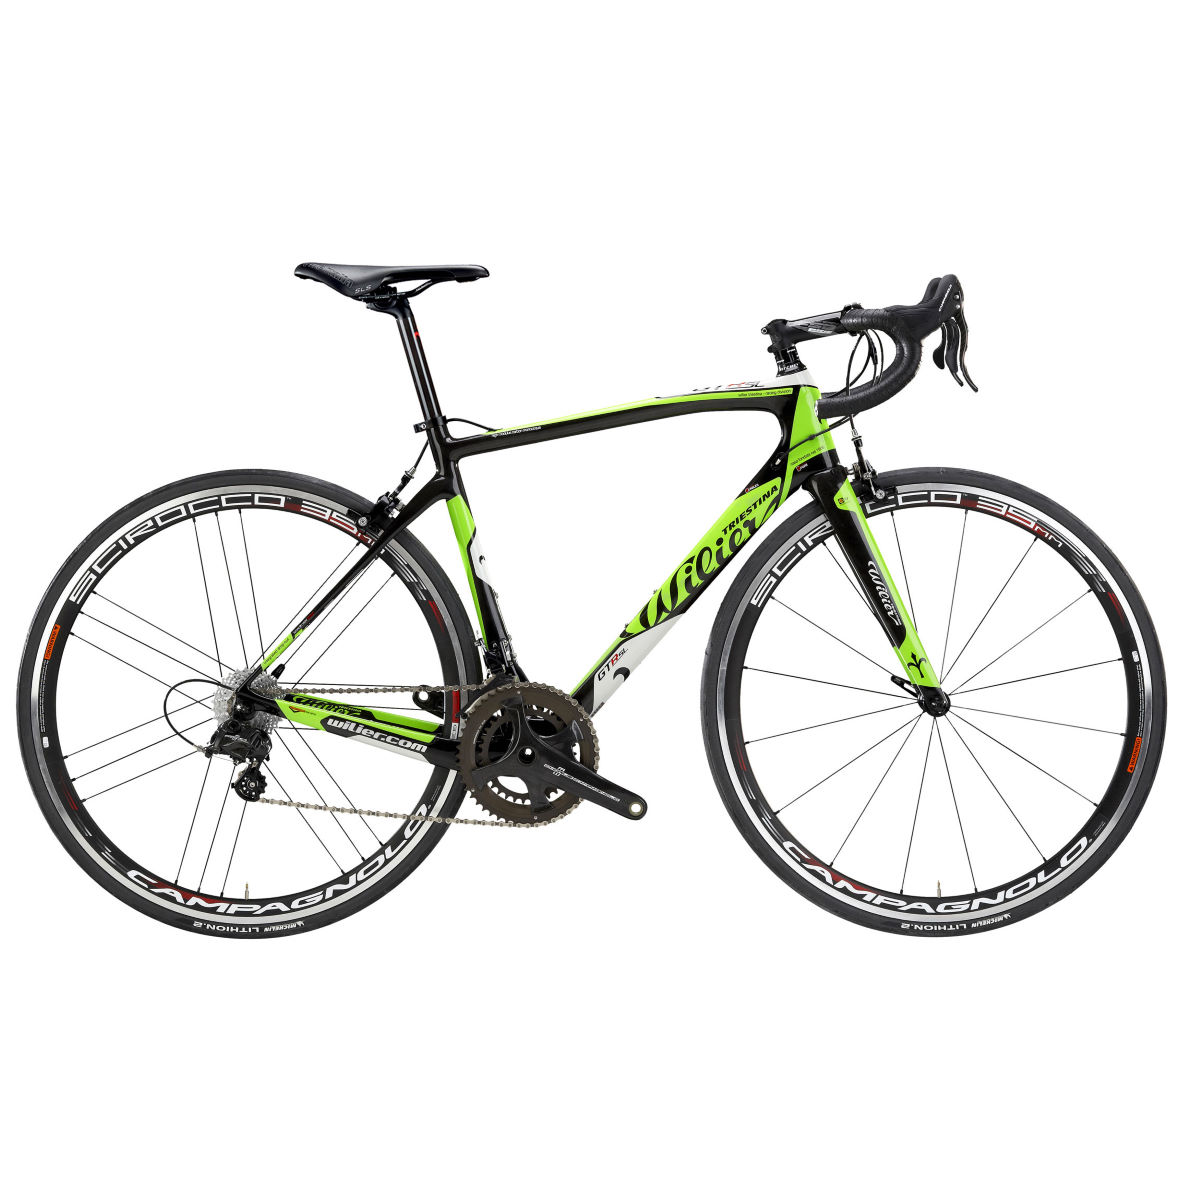 Vélo de route Wilier GTR SL Race (Chorus, 2017) - Medium Stock Bike Vert Vélos de route